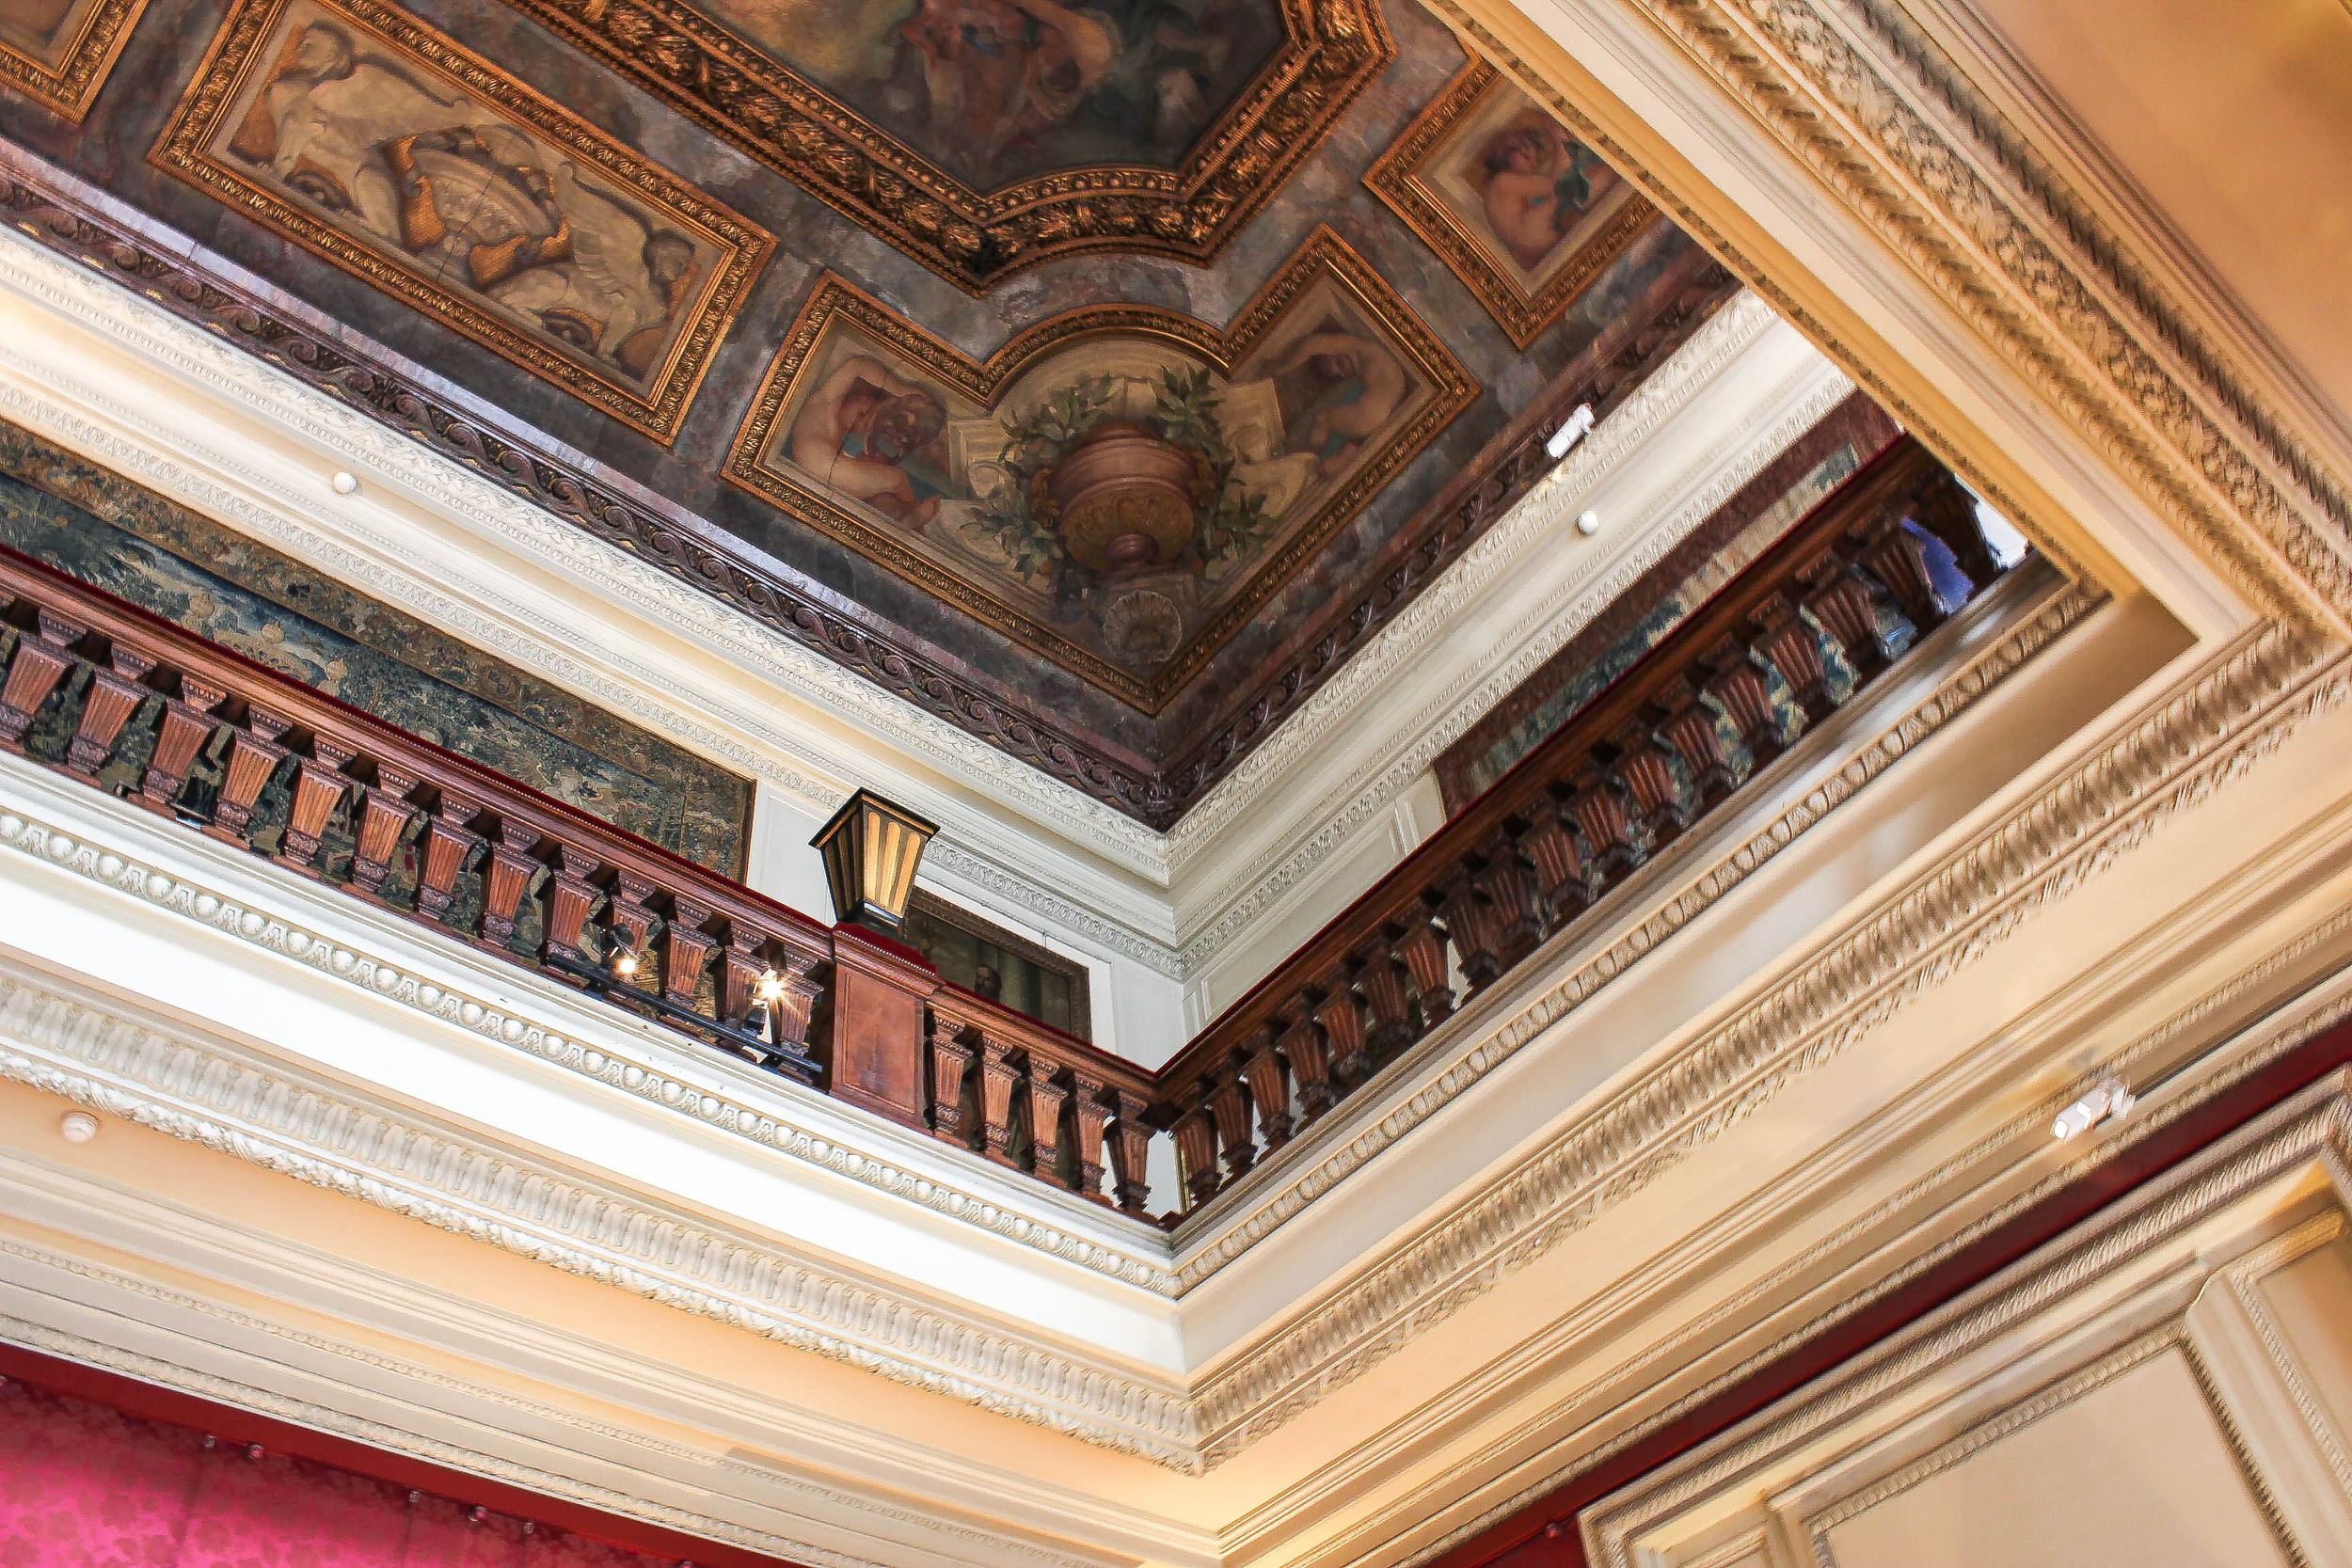 the two story grand ballroom, 16th century tapestries on the second floor